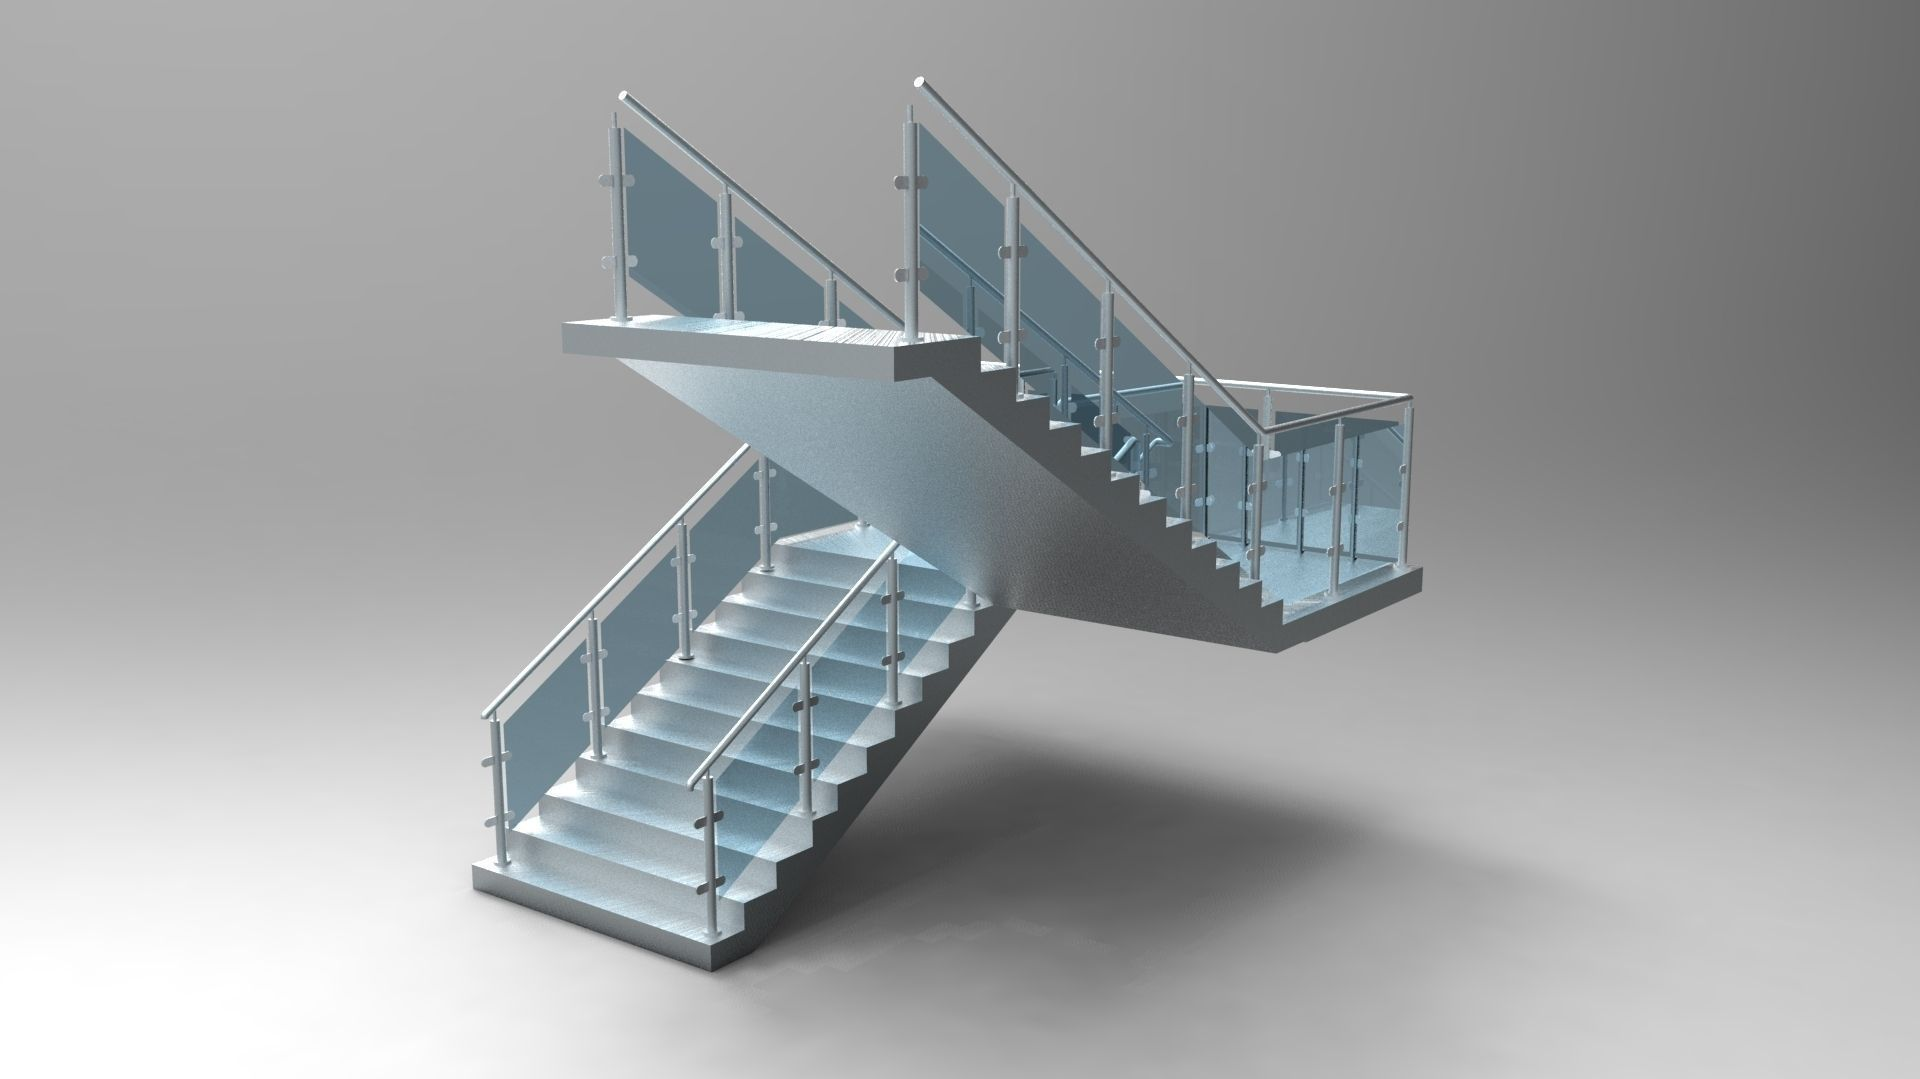 Concrete Stair Case with Glass Balustrade